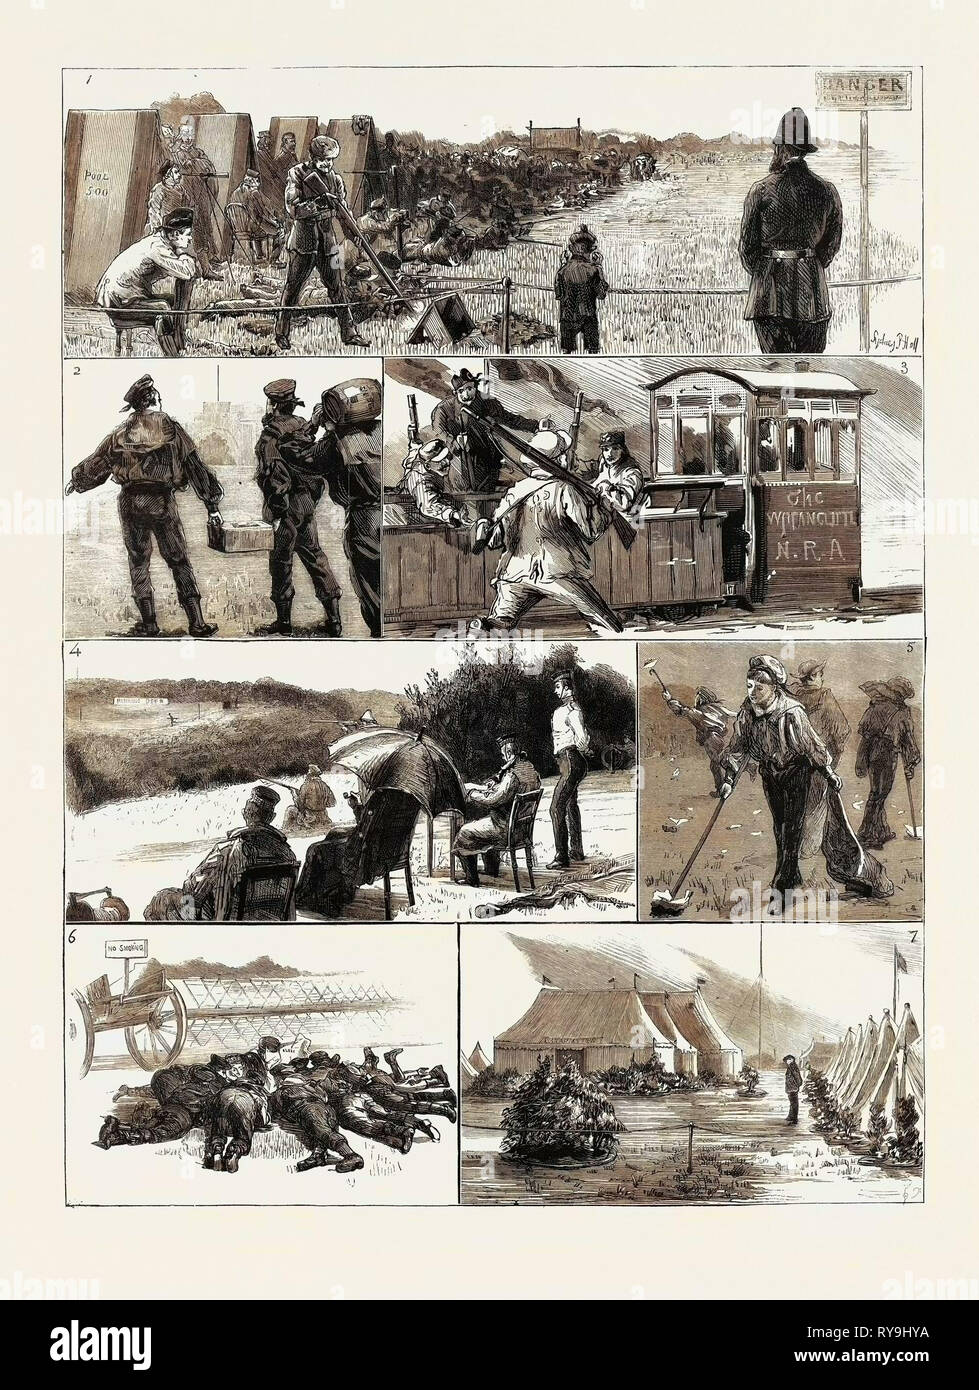 In Camp at Wimbledon: 1. A Blow Out for Threepence, 2. Ammunition, 3. The Running Man (No. 1): Friend a, 'Keep It Up, Brown,' Friend B, 'Give in Your Rifle, Old Man,' Friend C, 'Plenty of Room, Brown', 4. The Running Man (No. 2), 5. The Chiffonier Brigade, 6. Laying Their Heads Together after the Latest from Alexandria, 7. The Canadian Camp - Stock Image